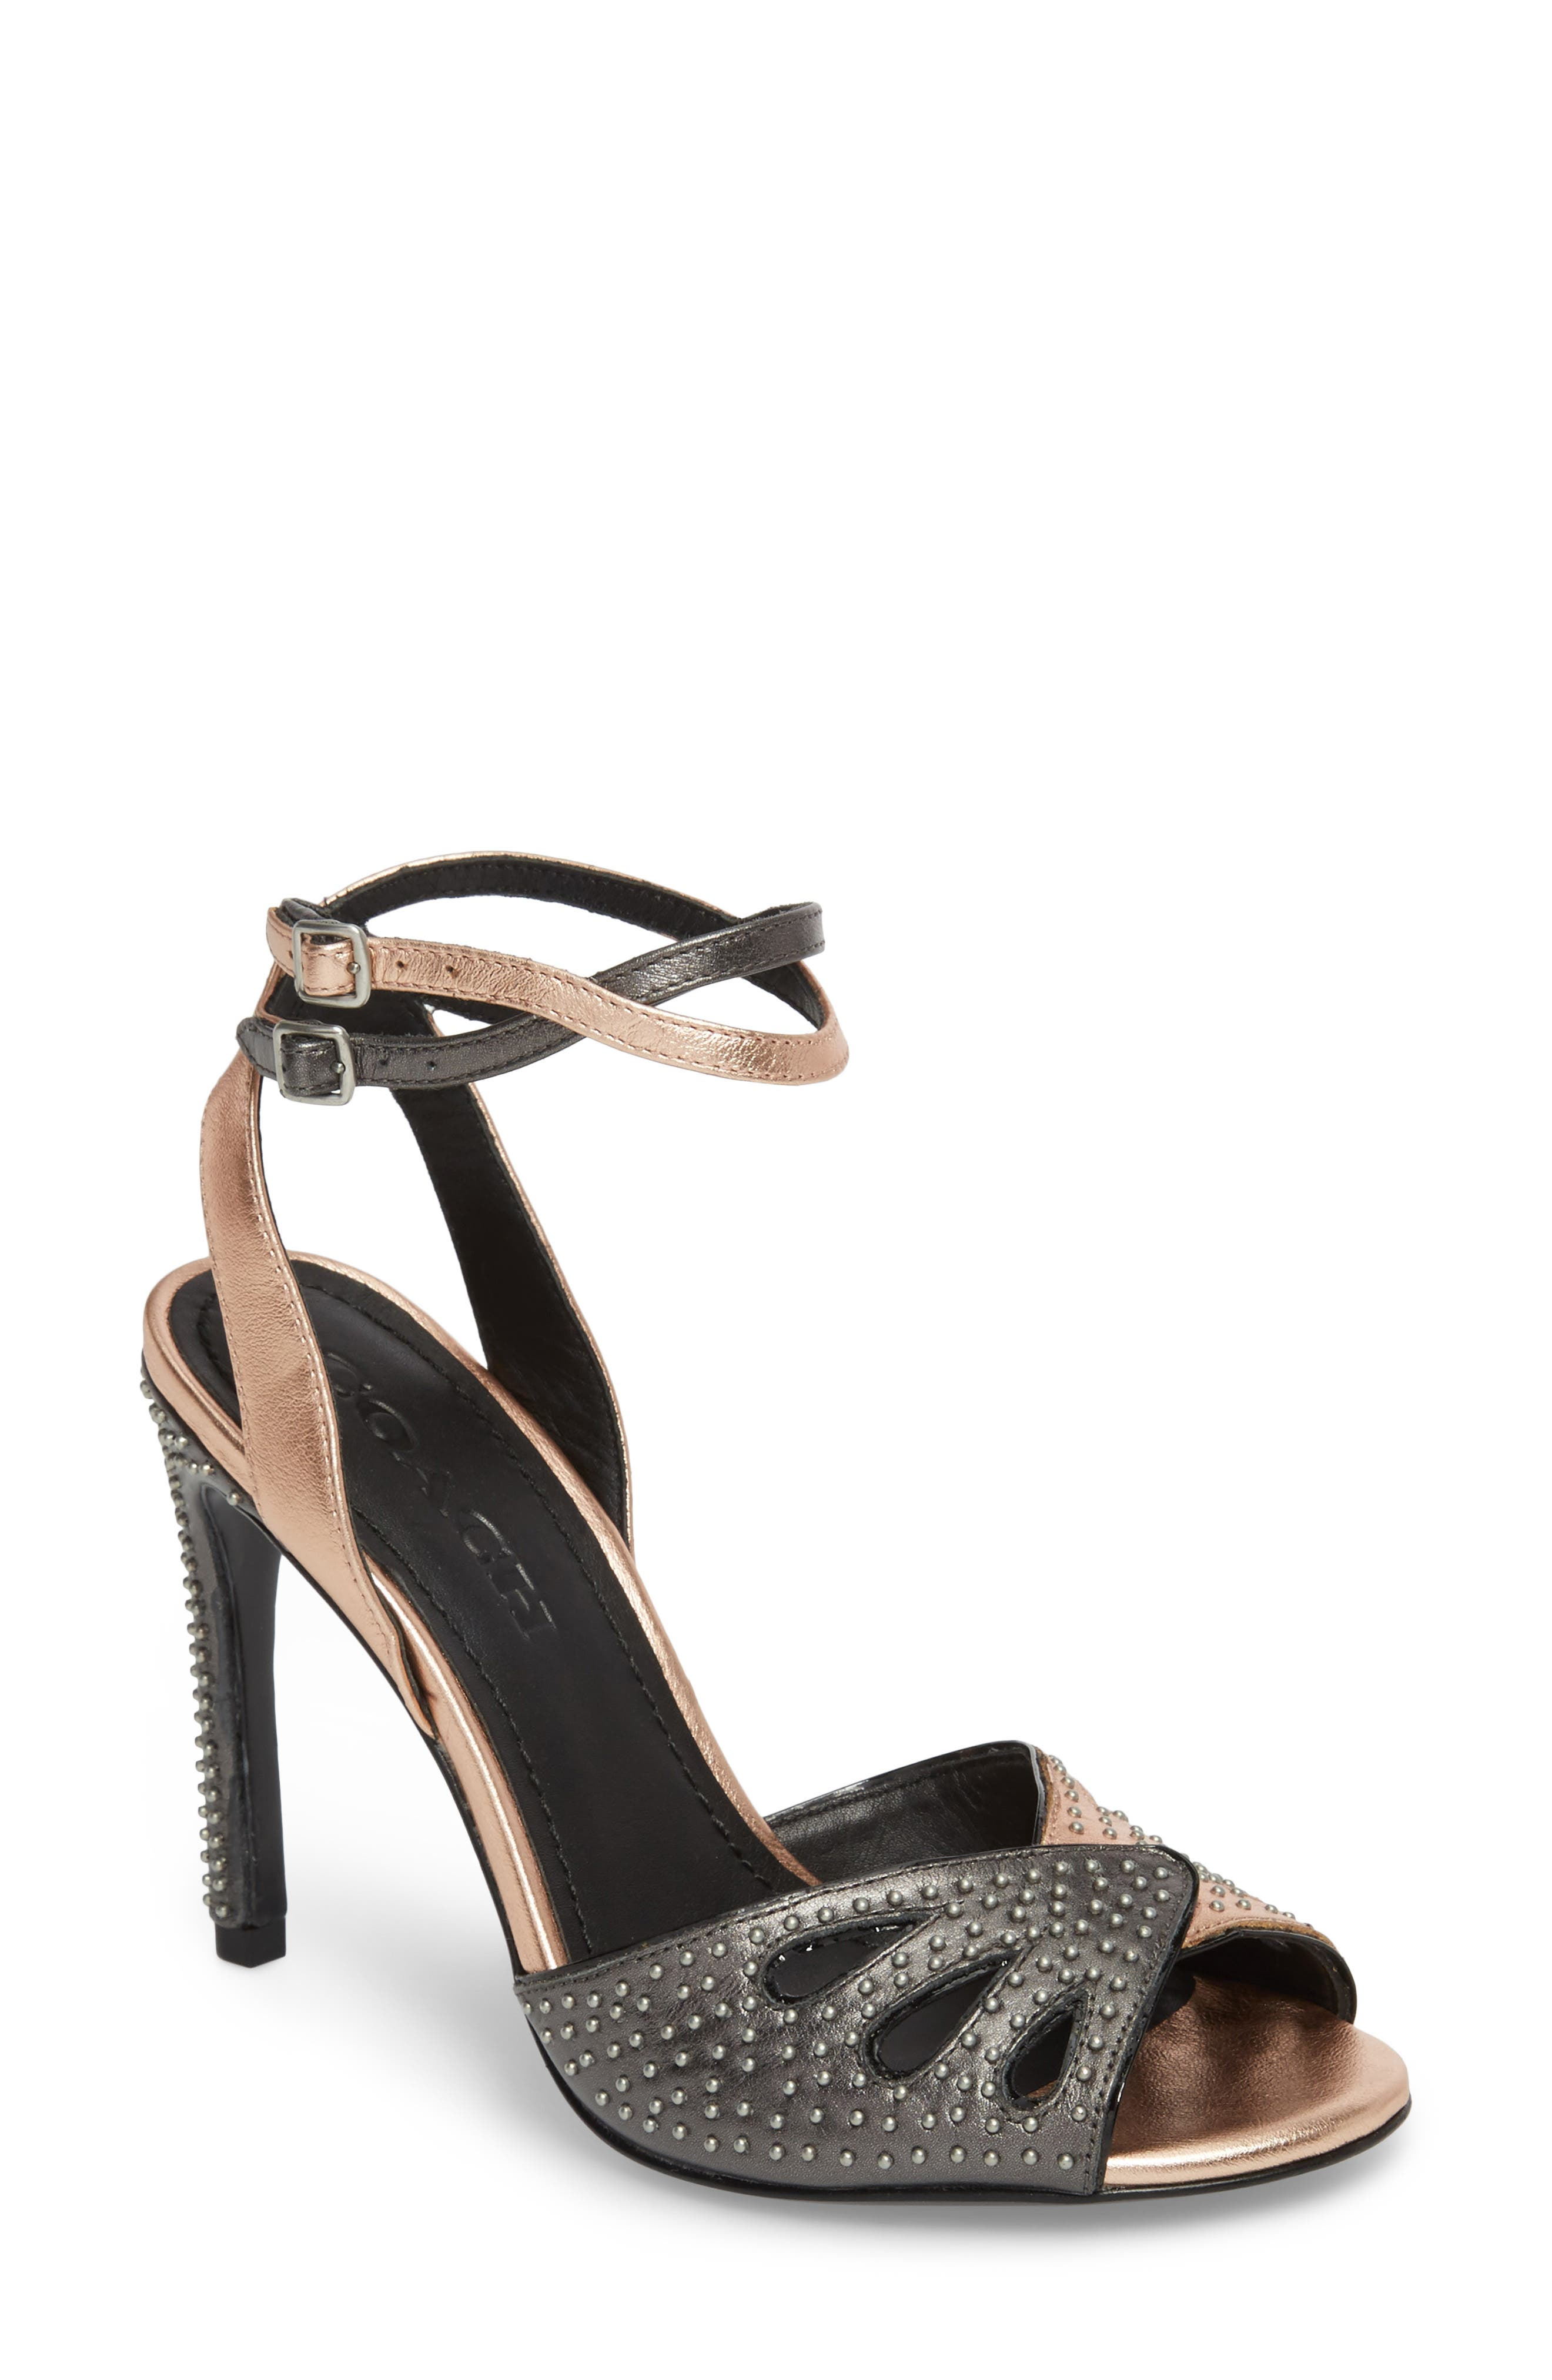 Prairie Rivet Sandal,                             Main thumbnail 1, color,                             Rose Gold/ Gunmetal